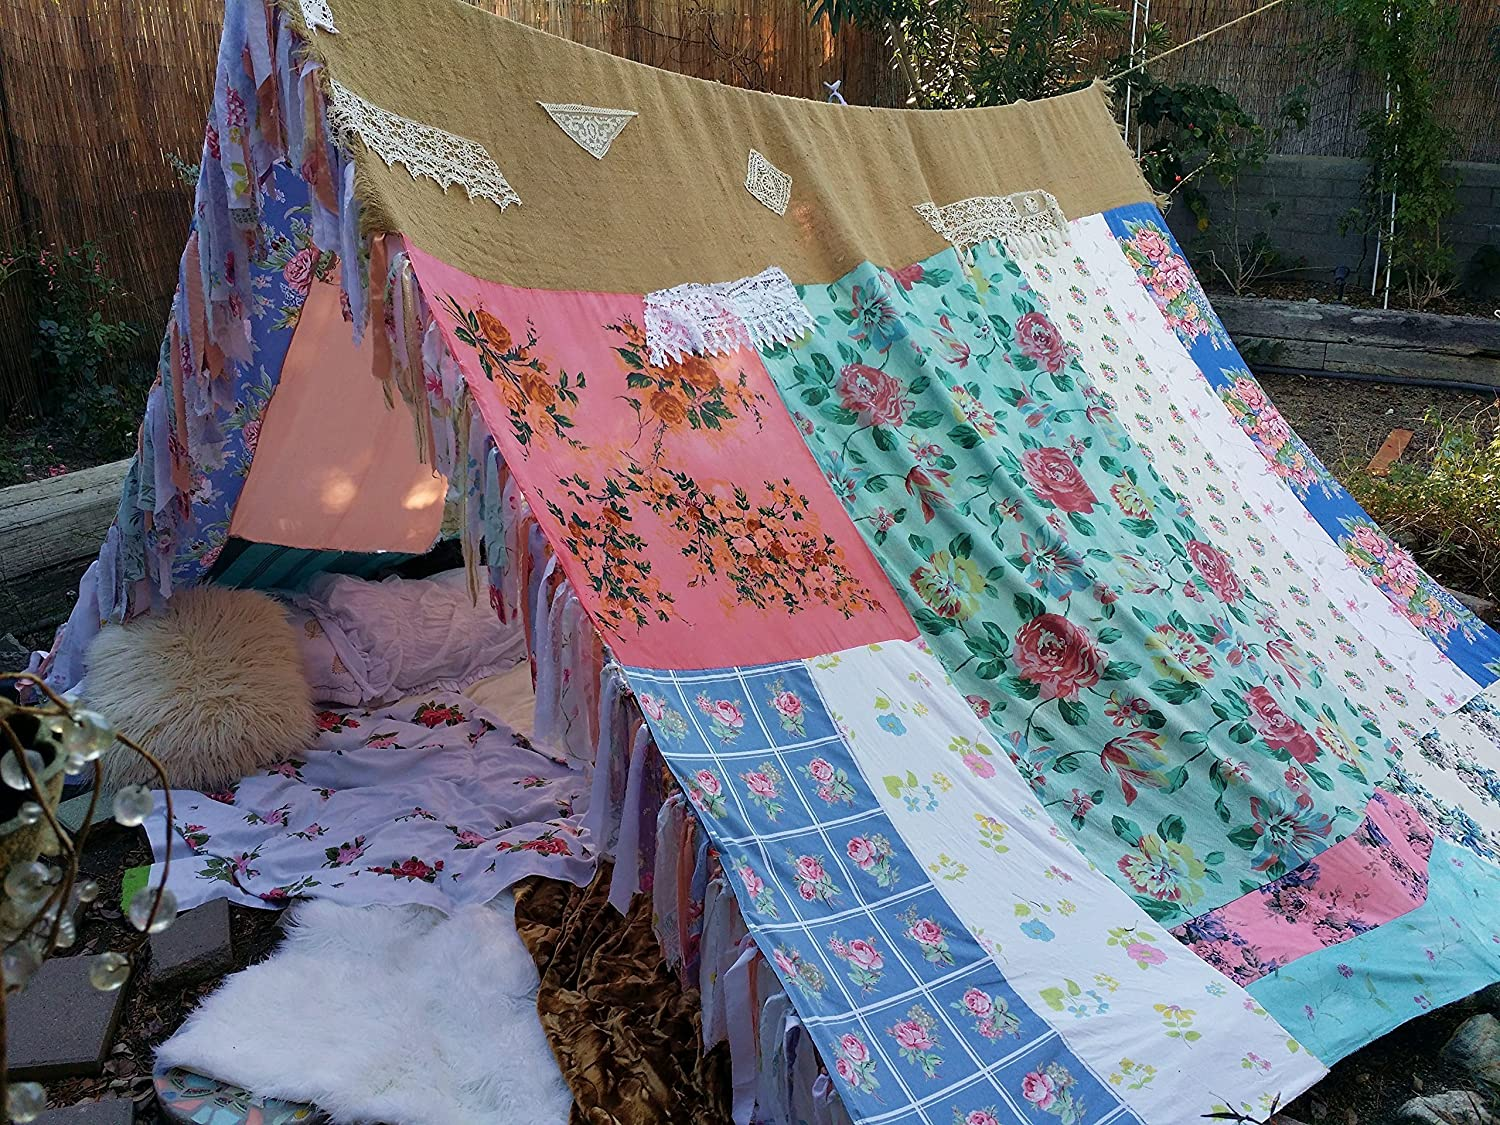 Amazon.com Boho Gypsy tent shabby chic gl&ing teepee hippiewild vtg scarves Gypsy hippie patchwork bed canopy Wedding photo prop Bohemian hippy Handmade & Amazon.com: Boho Gypsy tent shabby chic glamping teepee hippiewild ...